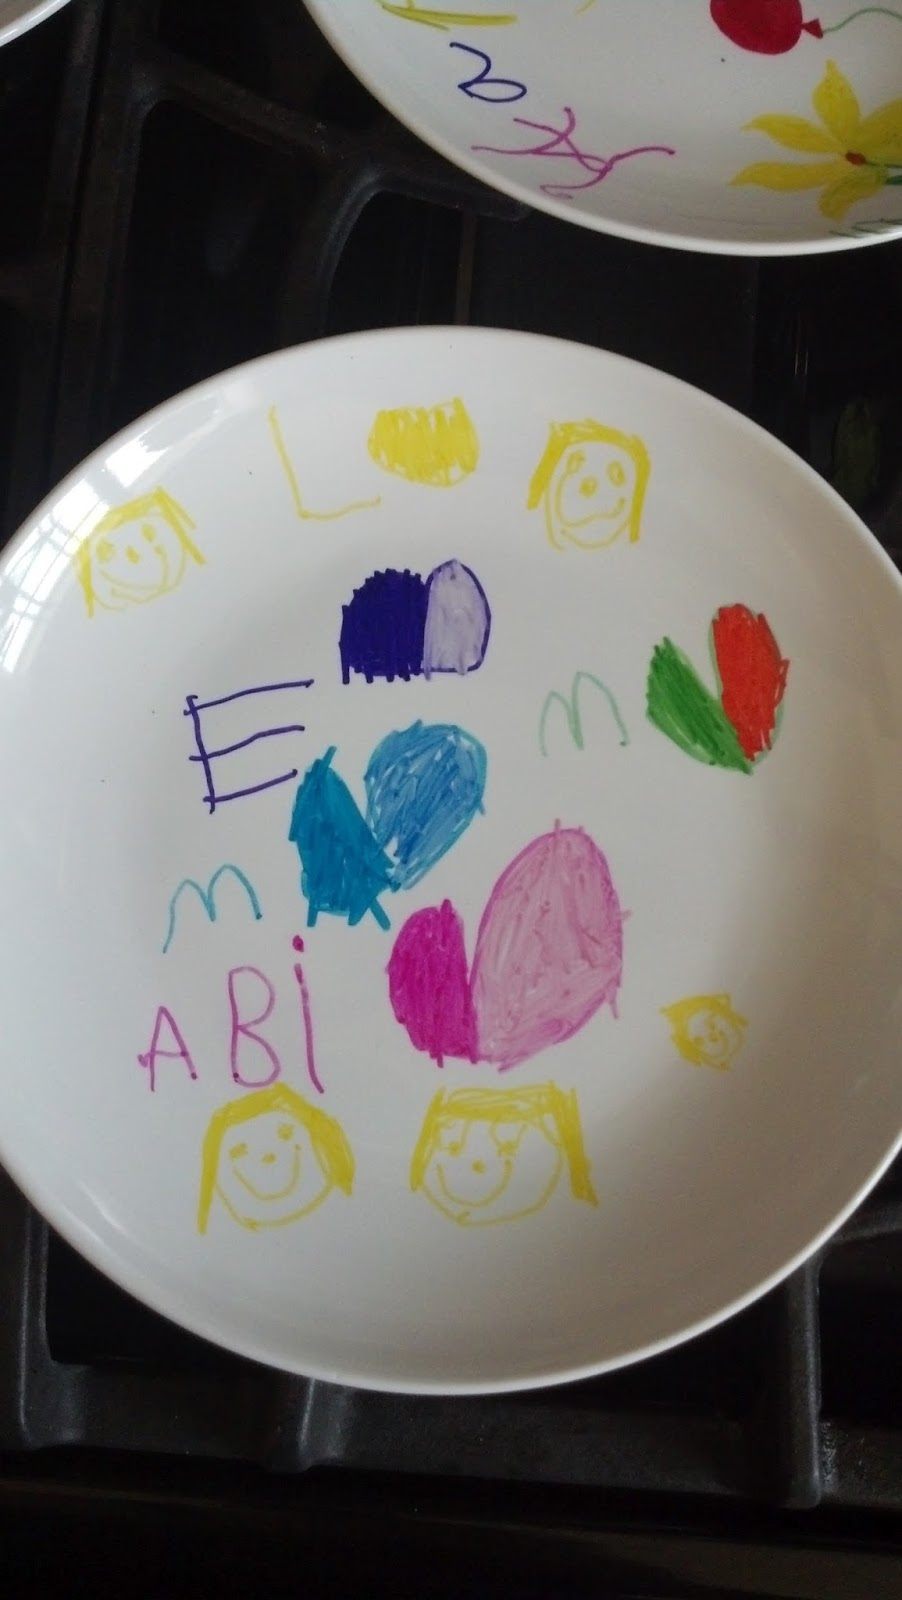 Abiu0027s plate & Back to the Basics!: DIY Plate Decorating